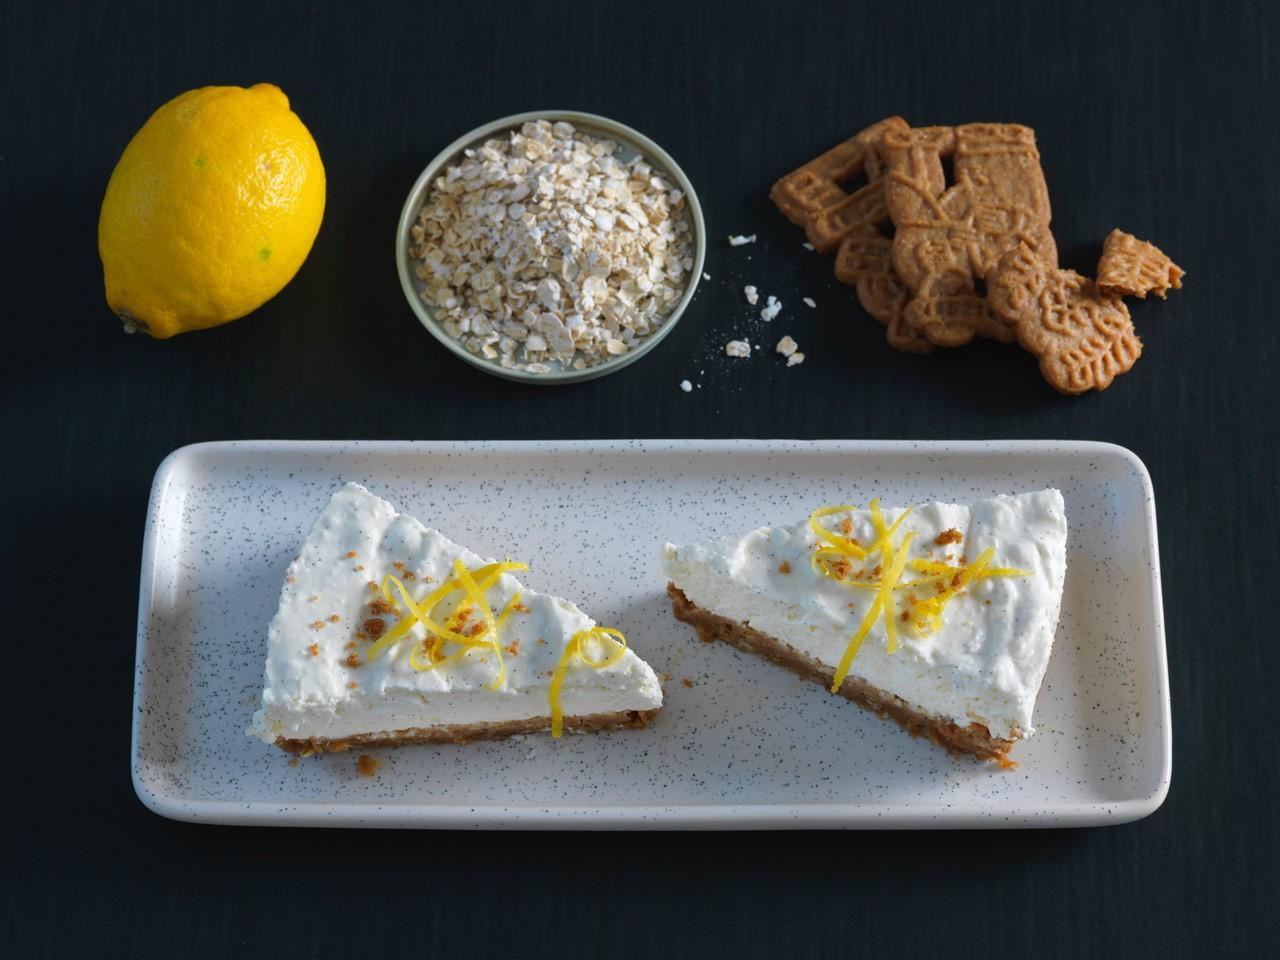 Cheesecake au citron